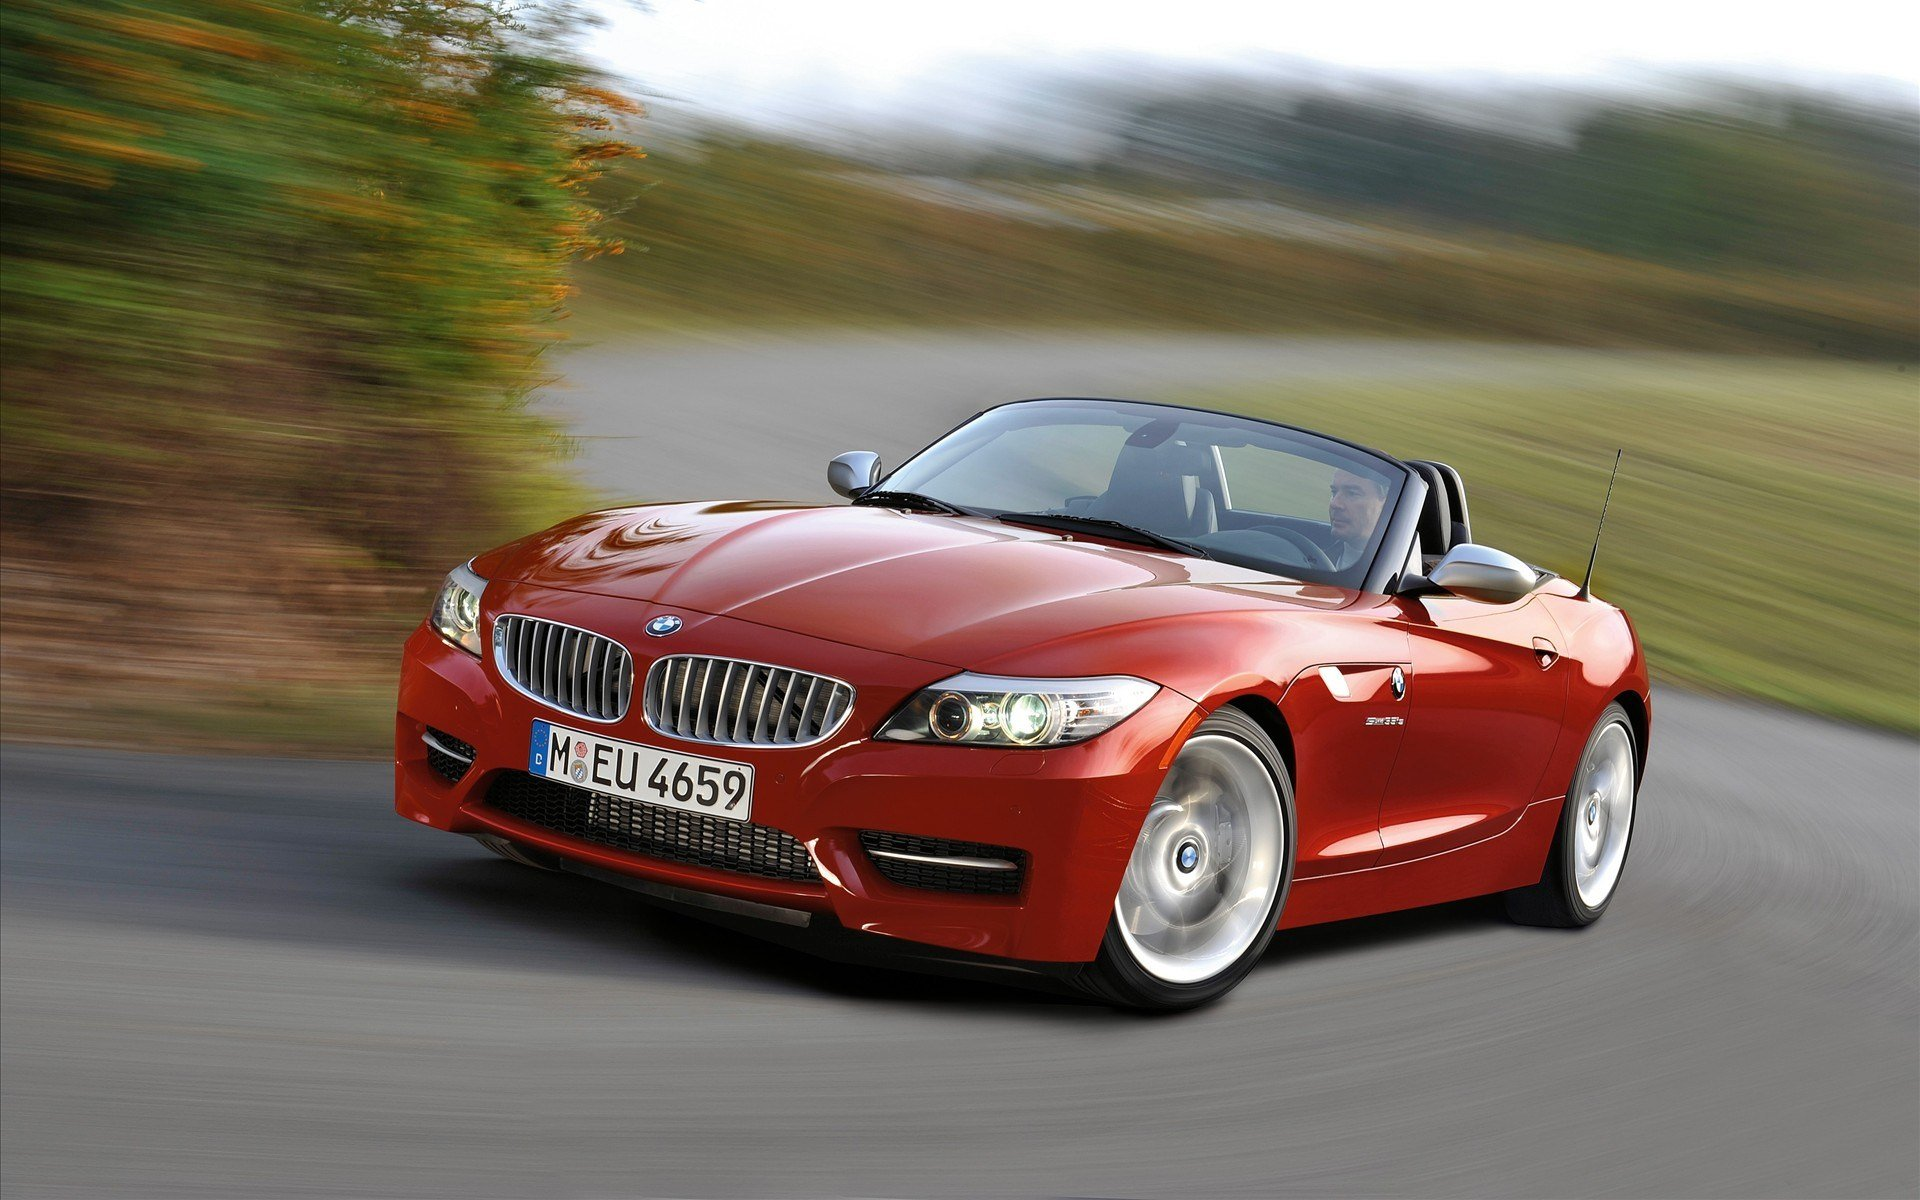 Latest New Bmw Z4 2011 Car Wallpapers Hd Wallpapers Id 6842 Free Download